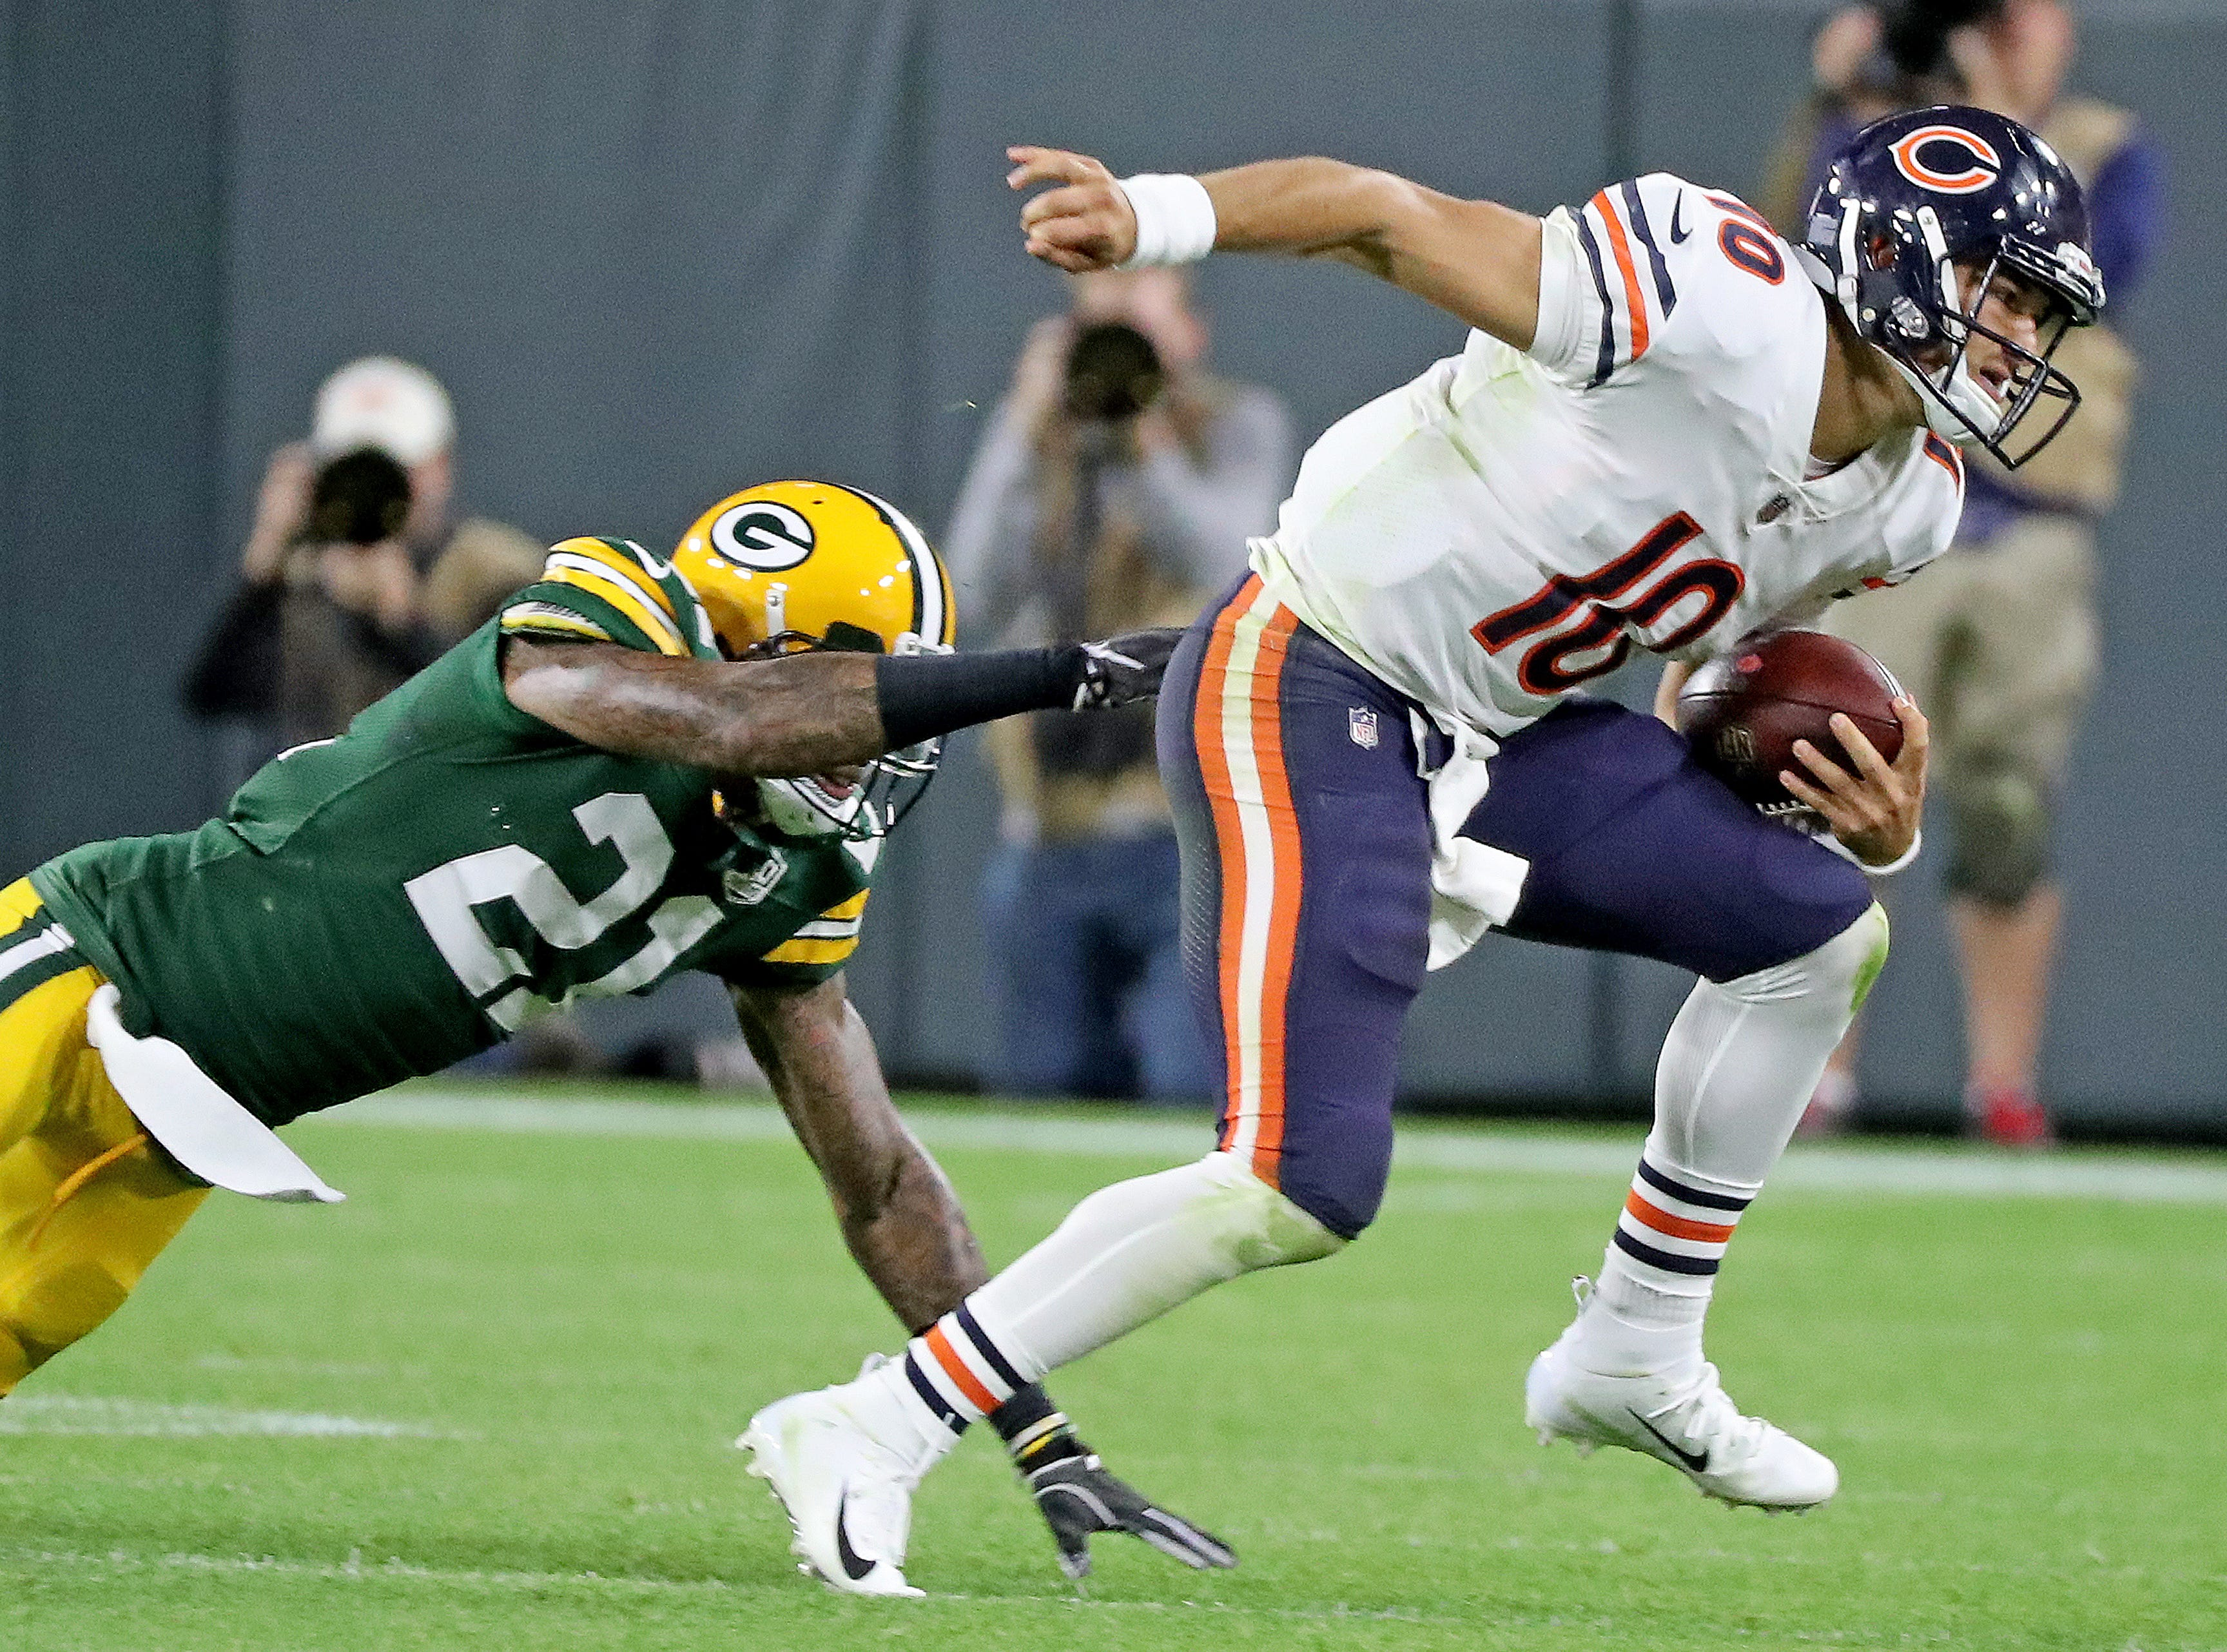 Green Bay Packers defensive back Ha Ha Clinton-Dix (21) chases quarterback Mitchell Trubisky (10) against the Chicago Bears Sunday, September 9, 2018 at Lambeau Field in Green Bay, Wis.